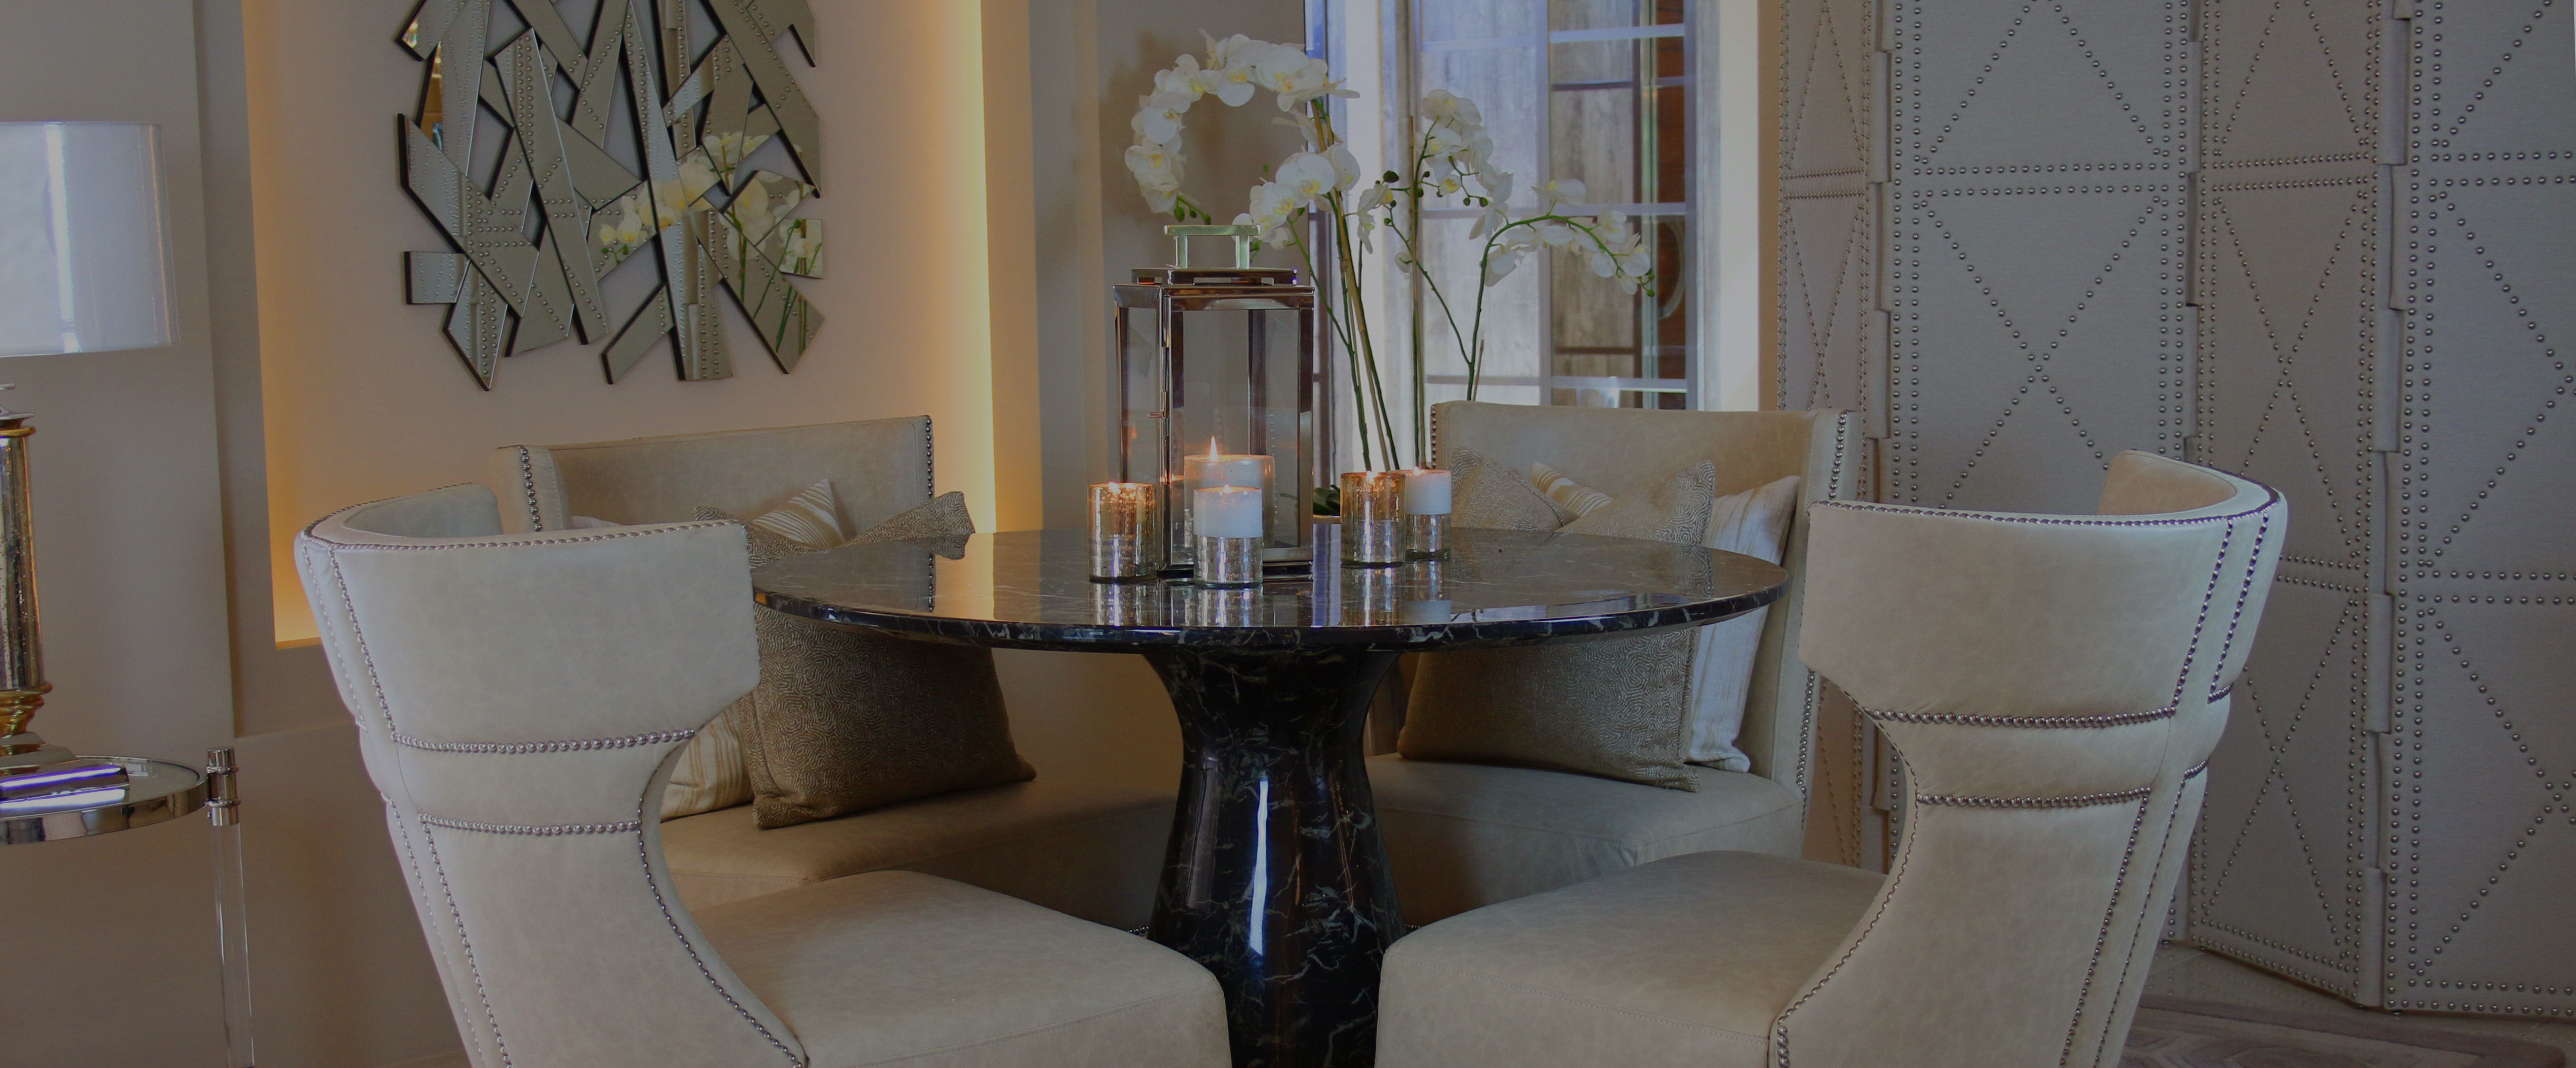 Marble table, cream studded chairs, inset wall art with back-lit lighting